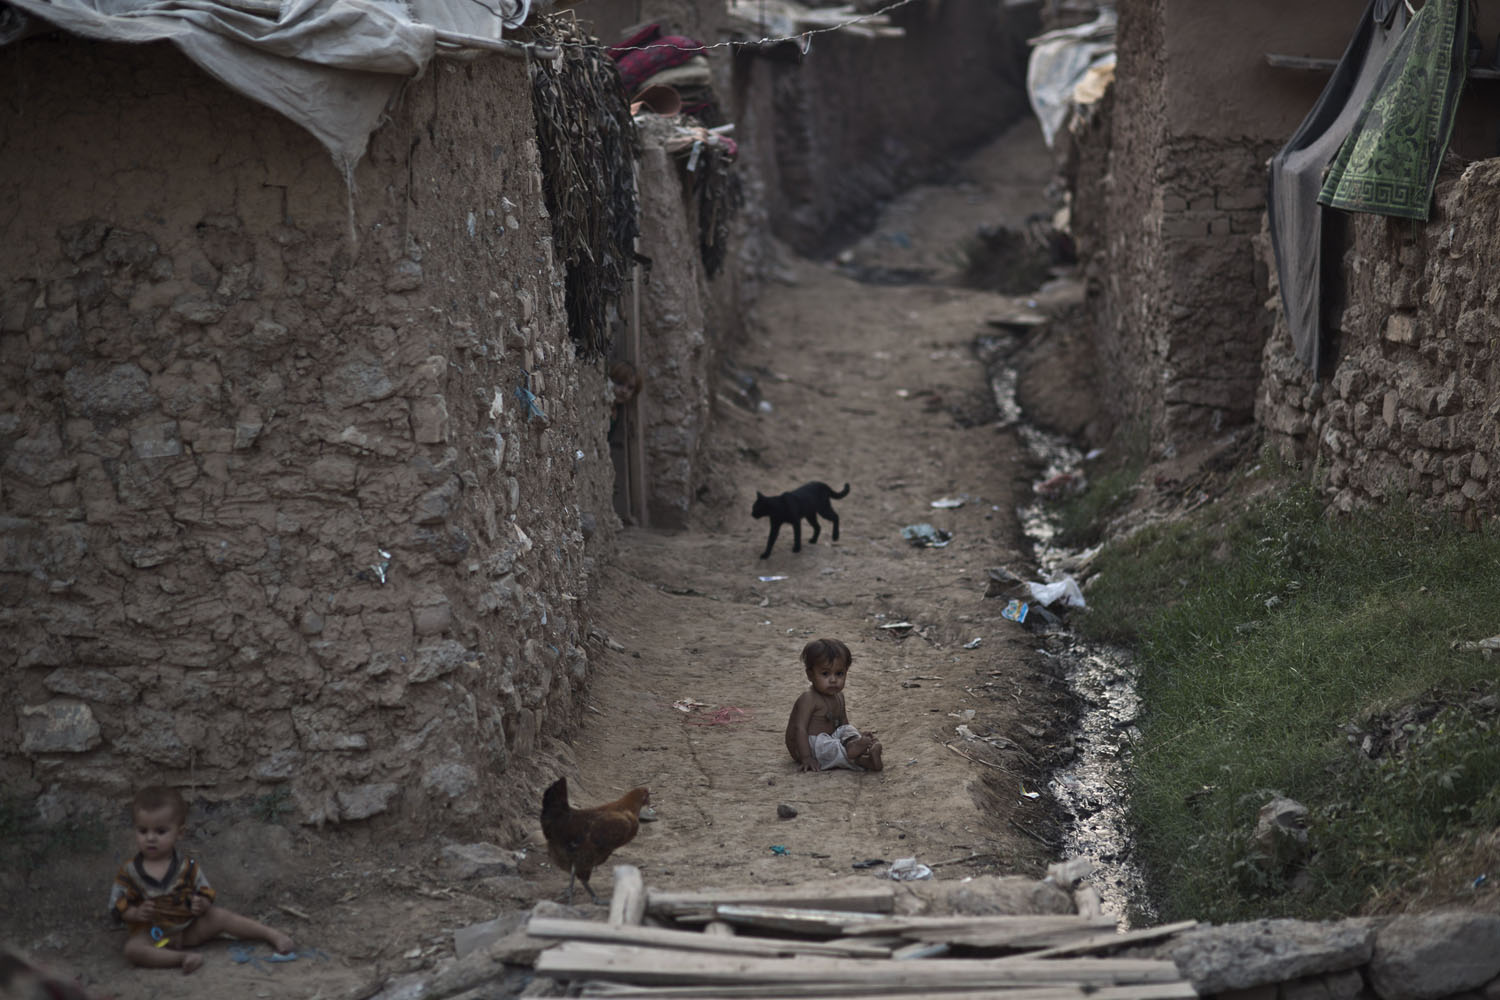 Oct. 10, 2013. Afghan refugee children play on the ground in an alley of a poor neighborhood on the outskirts of Islamabad, Pakistan,.